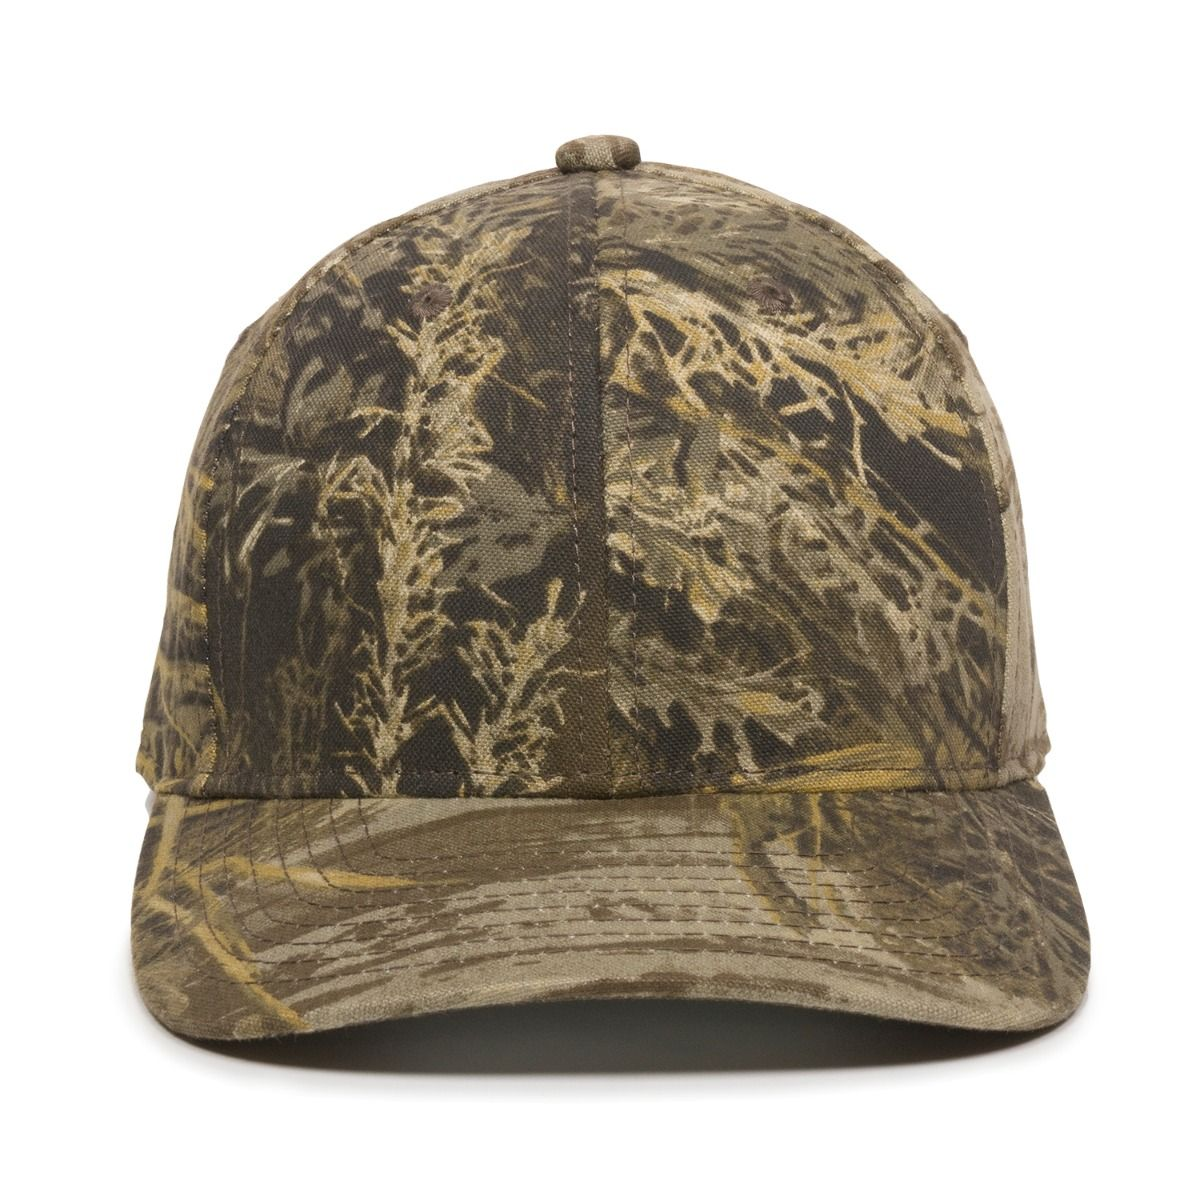 Outdoor Cap Structured Camouflage Cap 301IS Camo Baseball Hat Snapback Closure